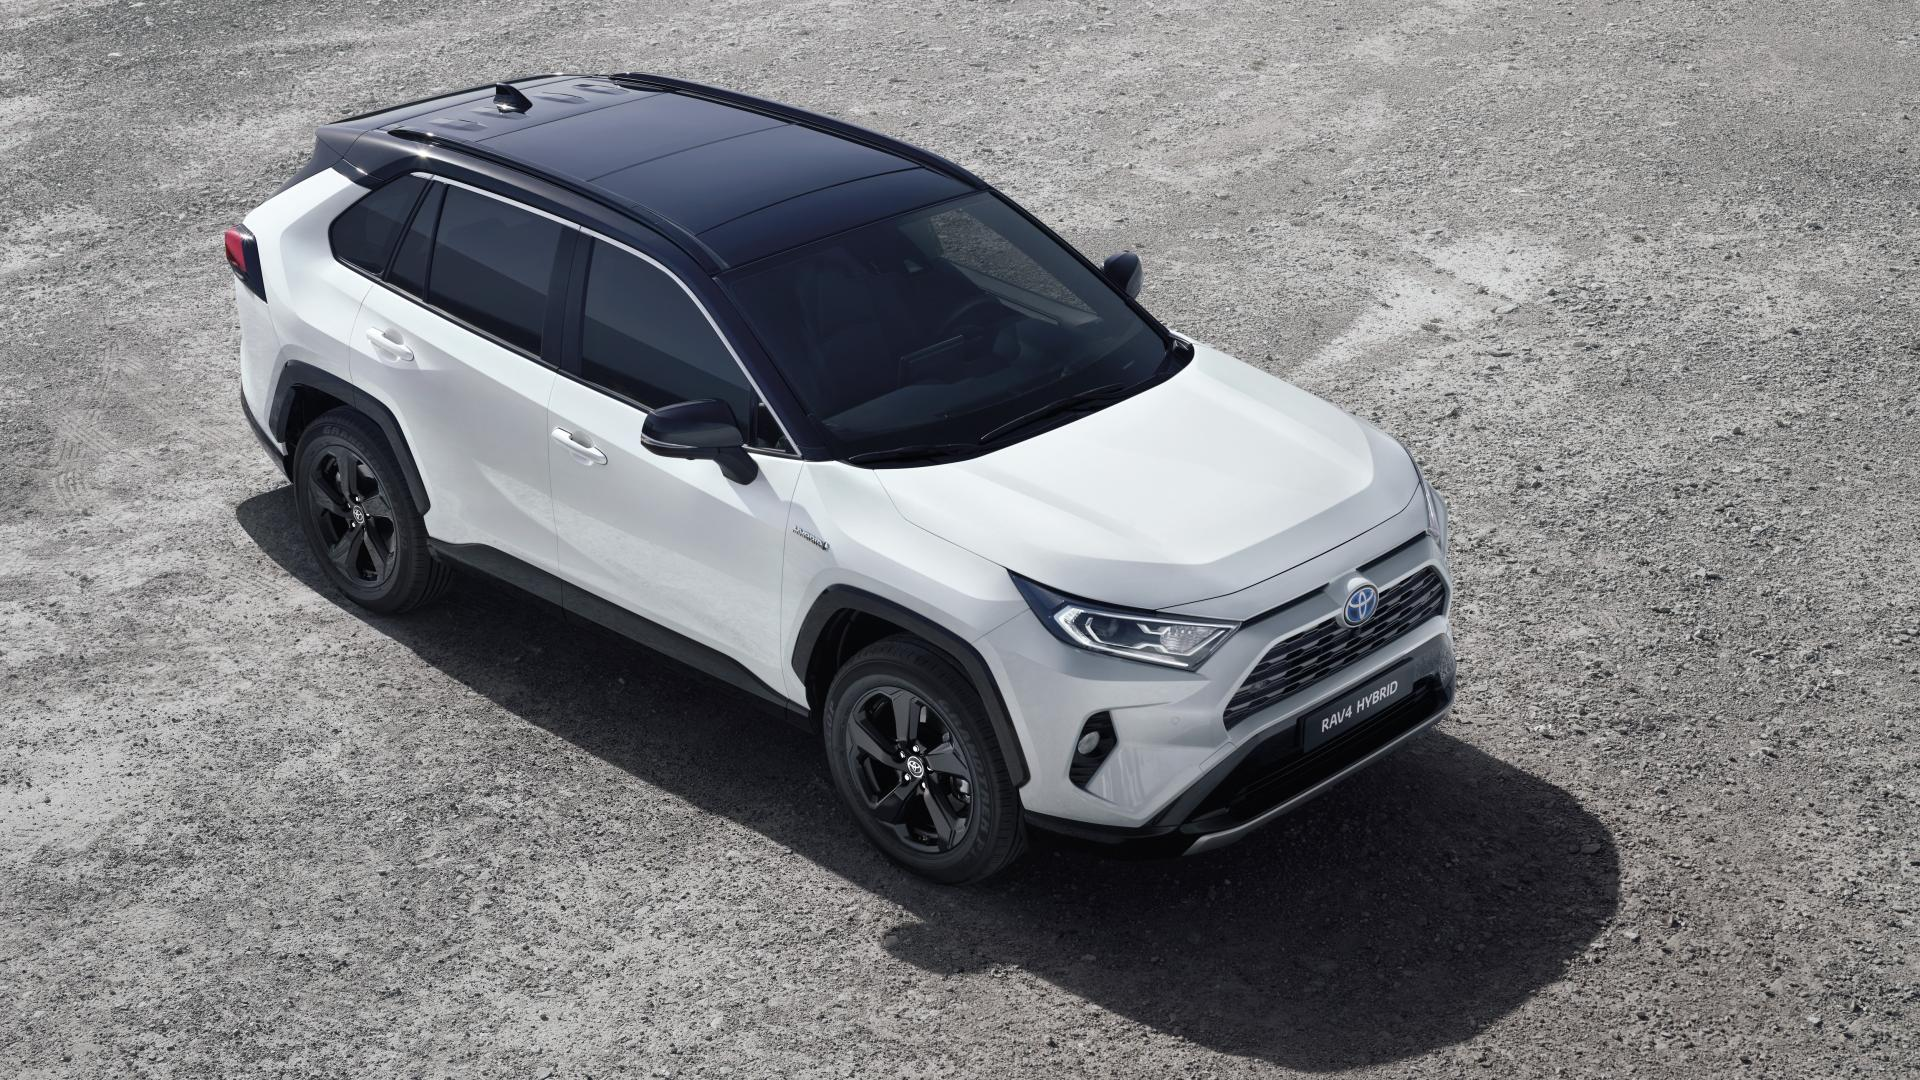 2020 Rav4 Hybrid Review.54 New 2020 Toyota Rav4 Hybrid Wallpaper Review Cars